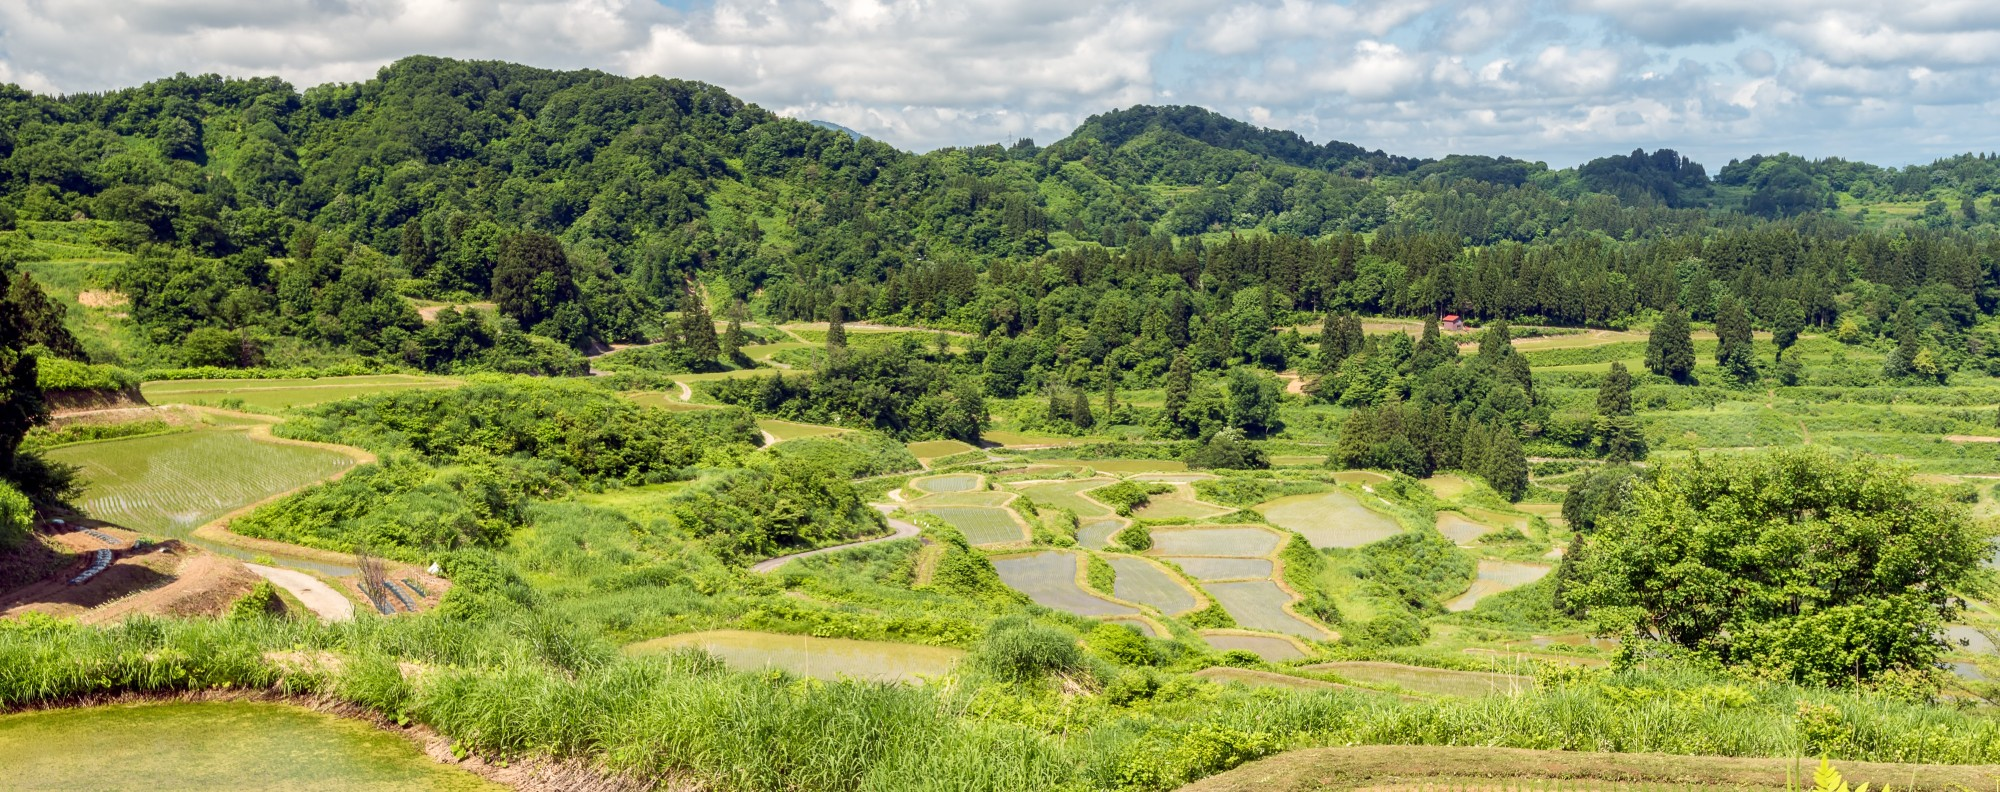 Rice terraces in Hoshitoge, in Niigata prefecture, in Japan.